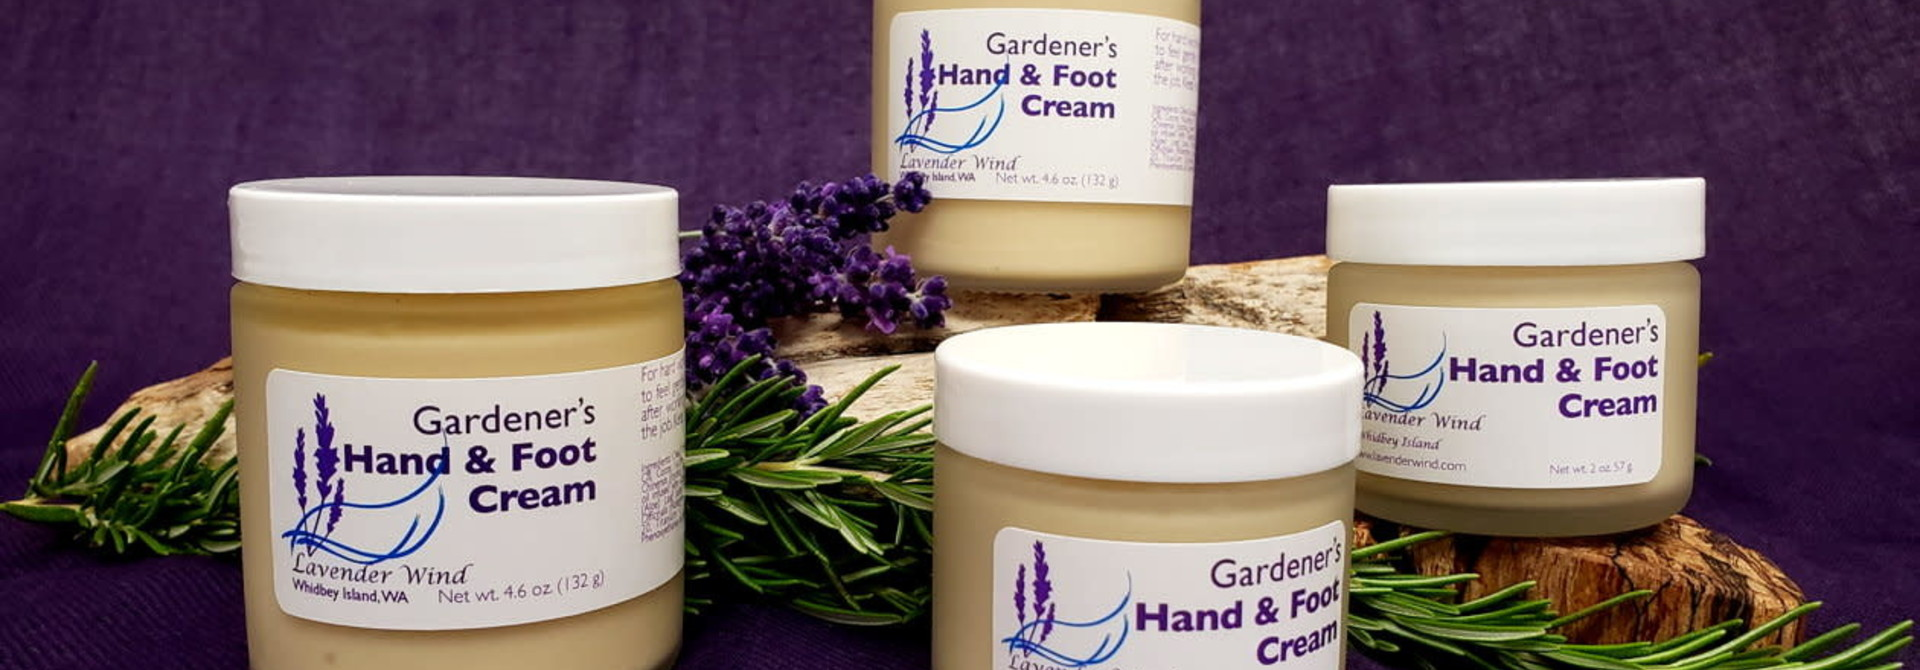 Gardener's Hand & Foot Cream - 2 oz